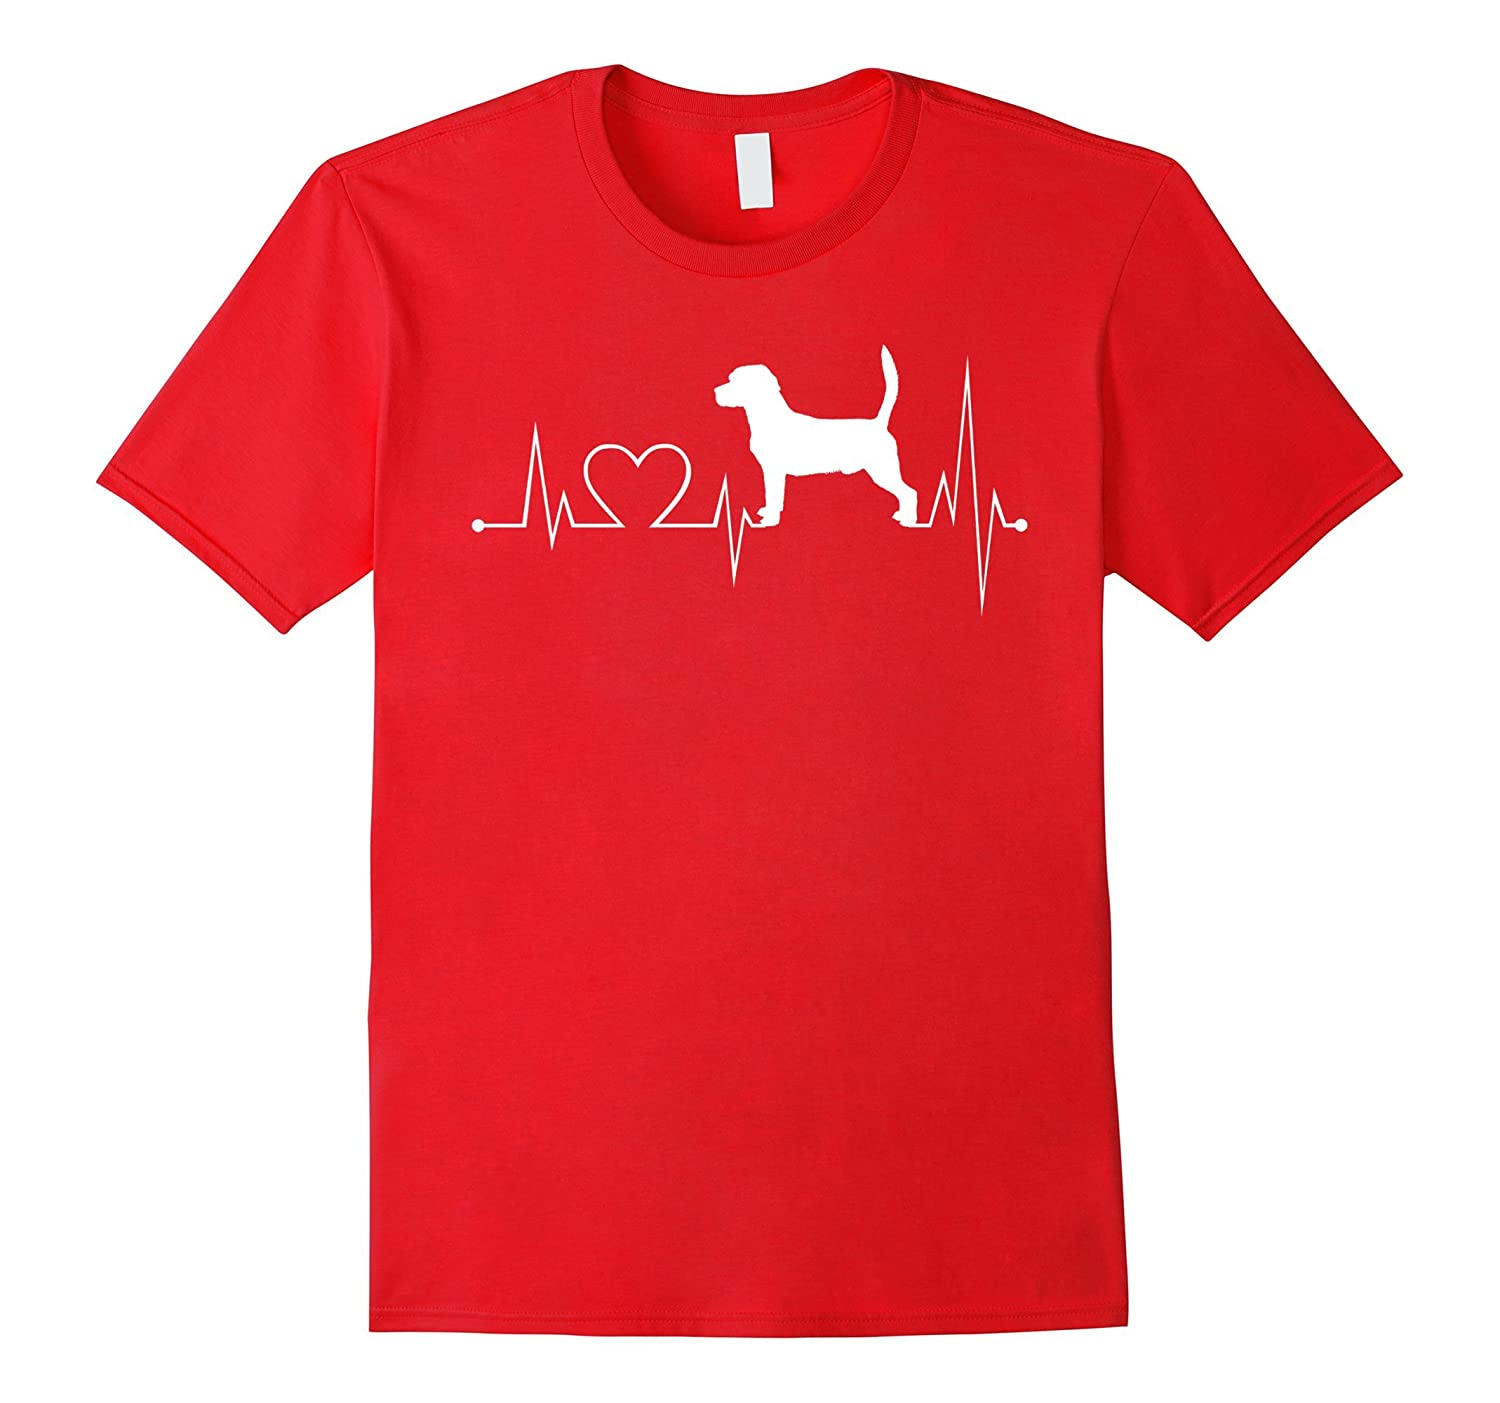 Beagle-dog heartbeat shirt-Beagle-dog lovers tshirt-Vaci